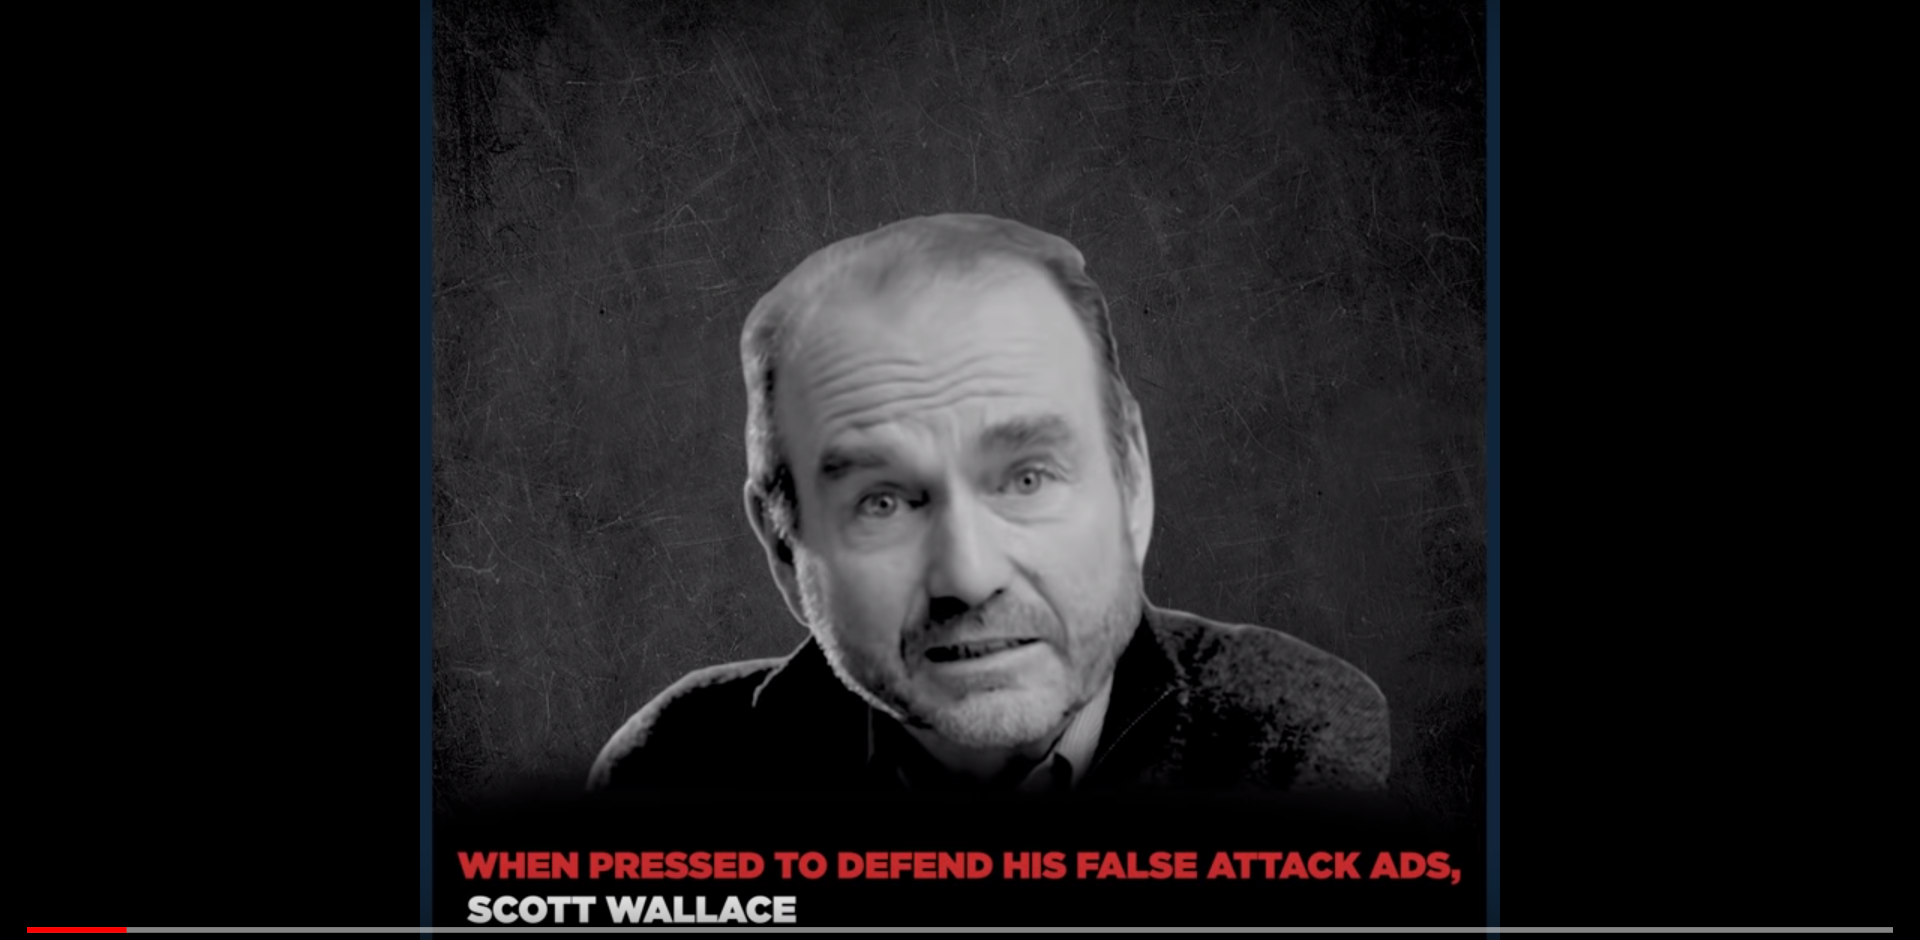 In this ad from the campaign of Republican Congressman Brian Fitzpatrick, Democratic challenger Scott Wallace is seen in a black and white photo.